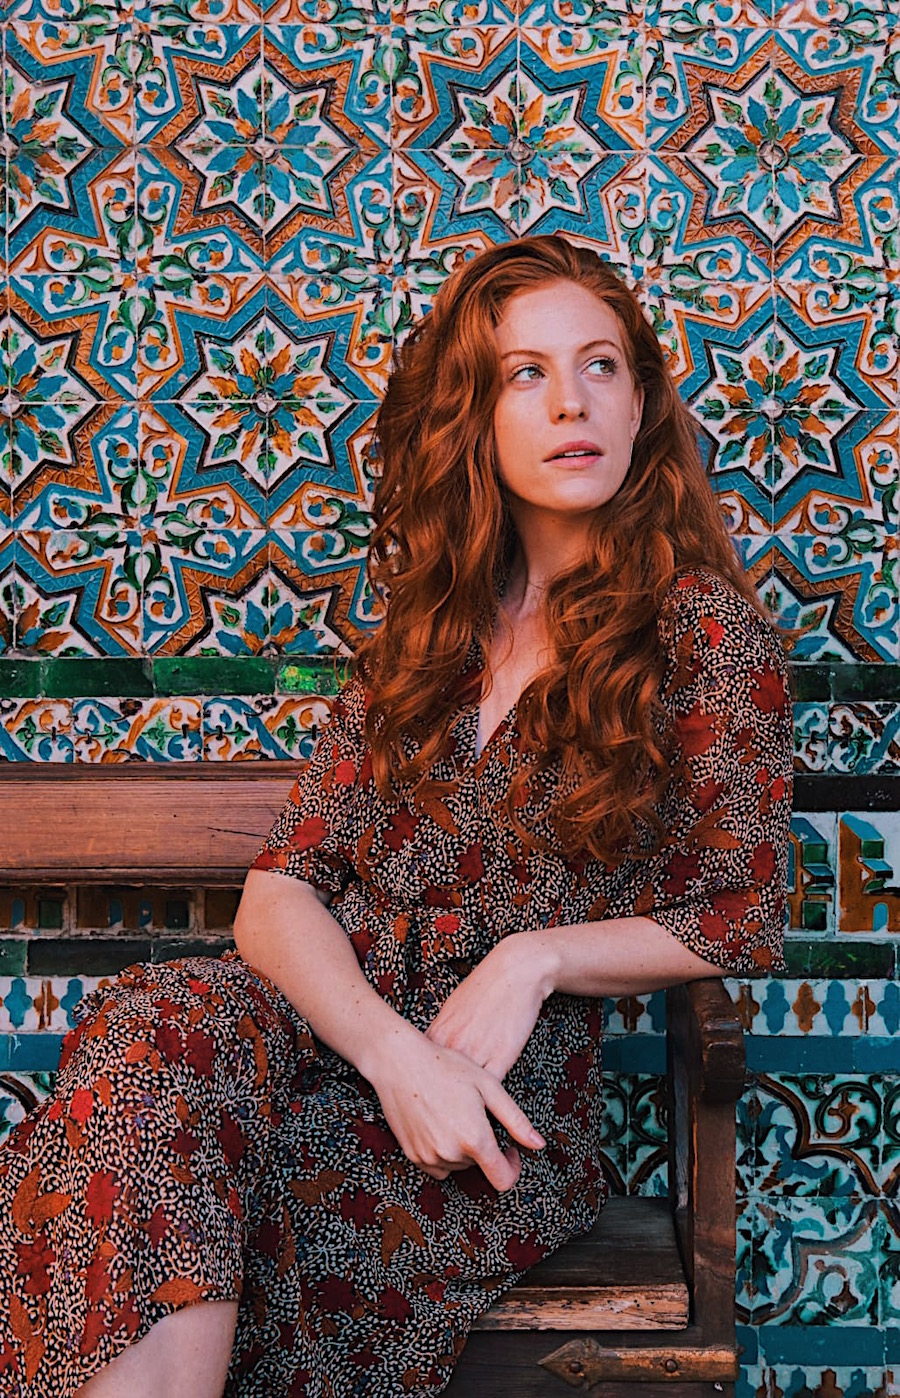 redhead-round-the-world-blogger-seville-casa-de-pilatos-tiles.JPG